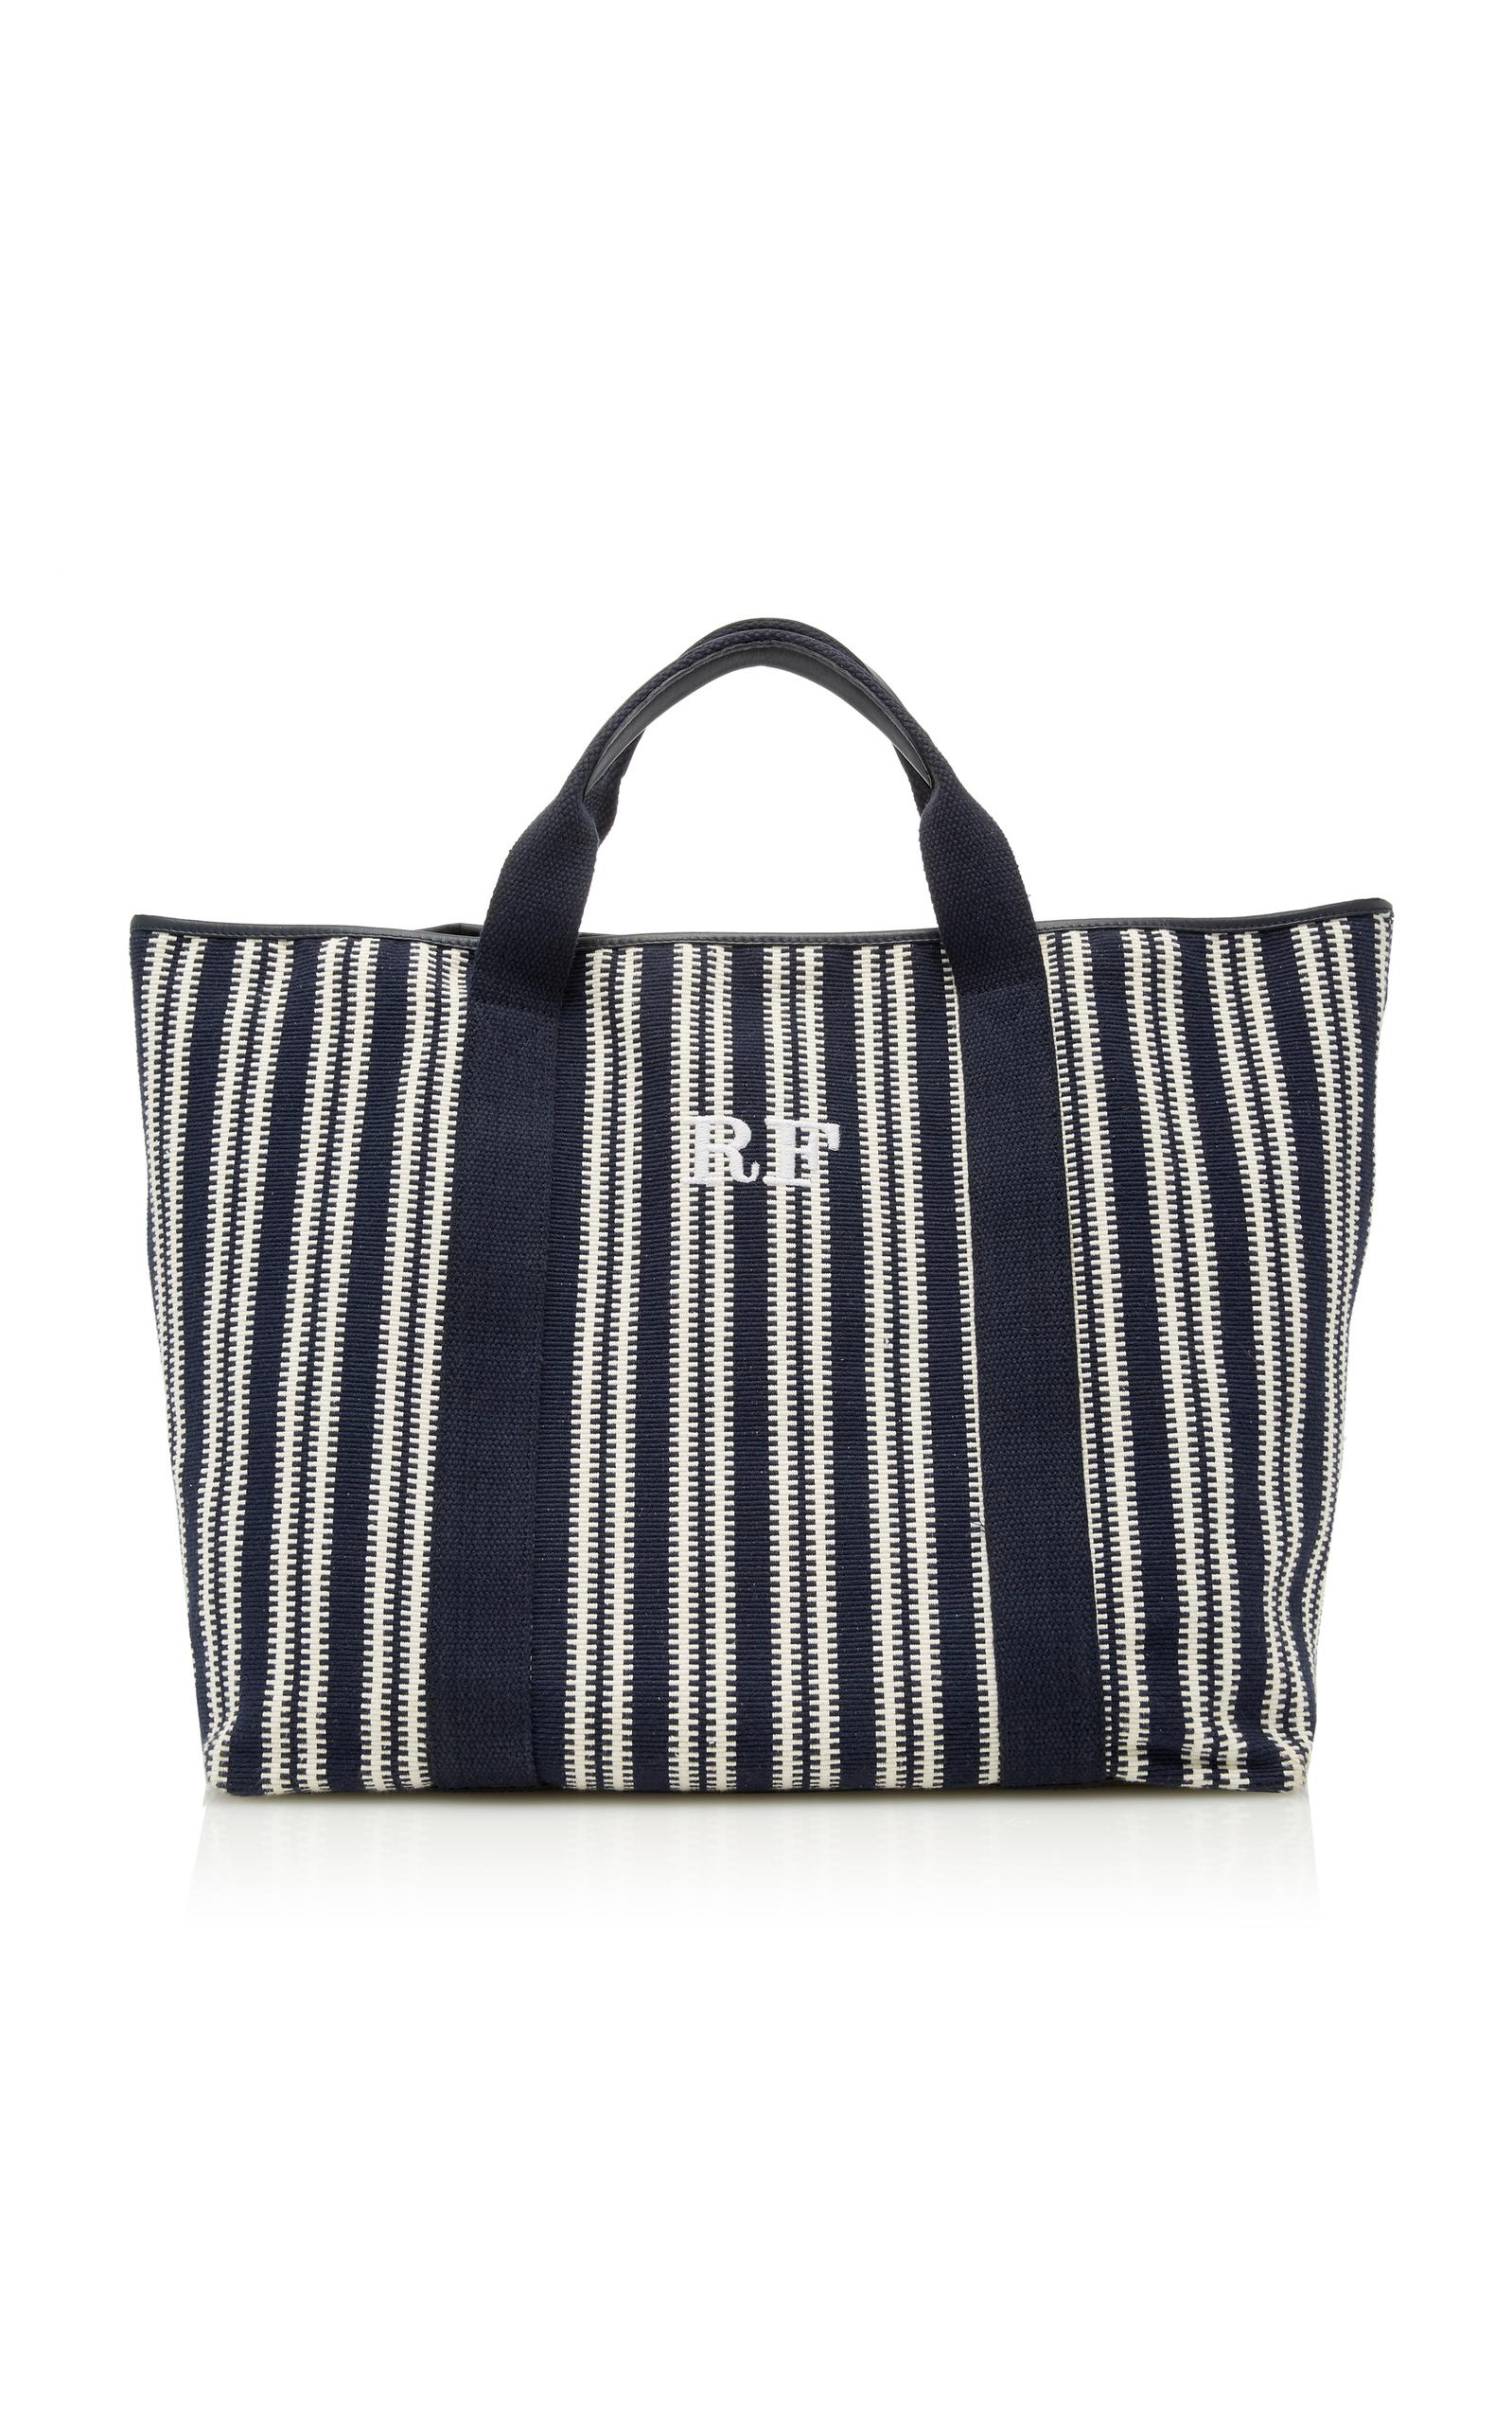 Rae Feather Jaquard Cotton Tote In Navy